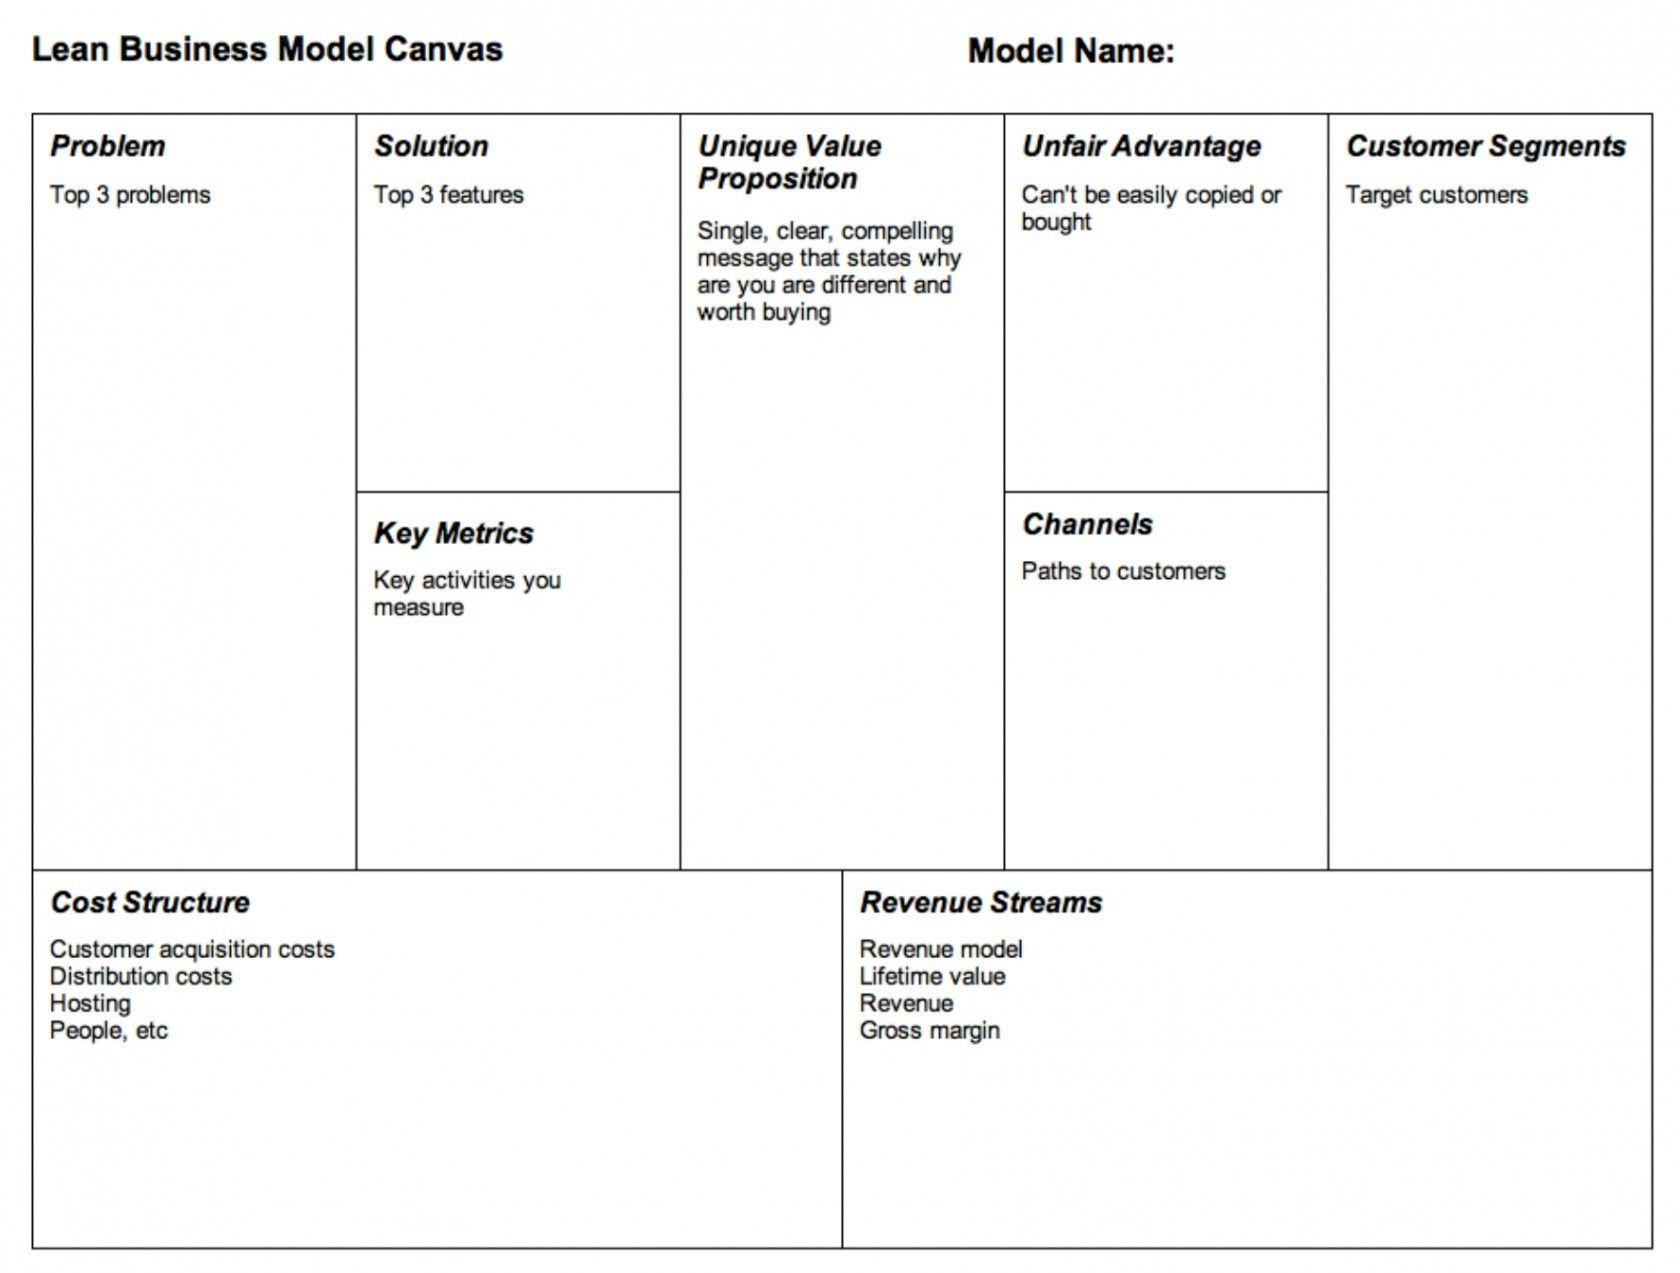 New Lean Business Model Canvas Template (With images